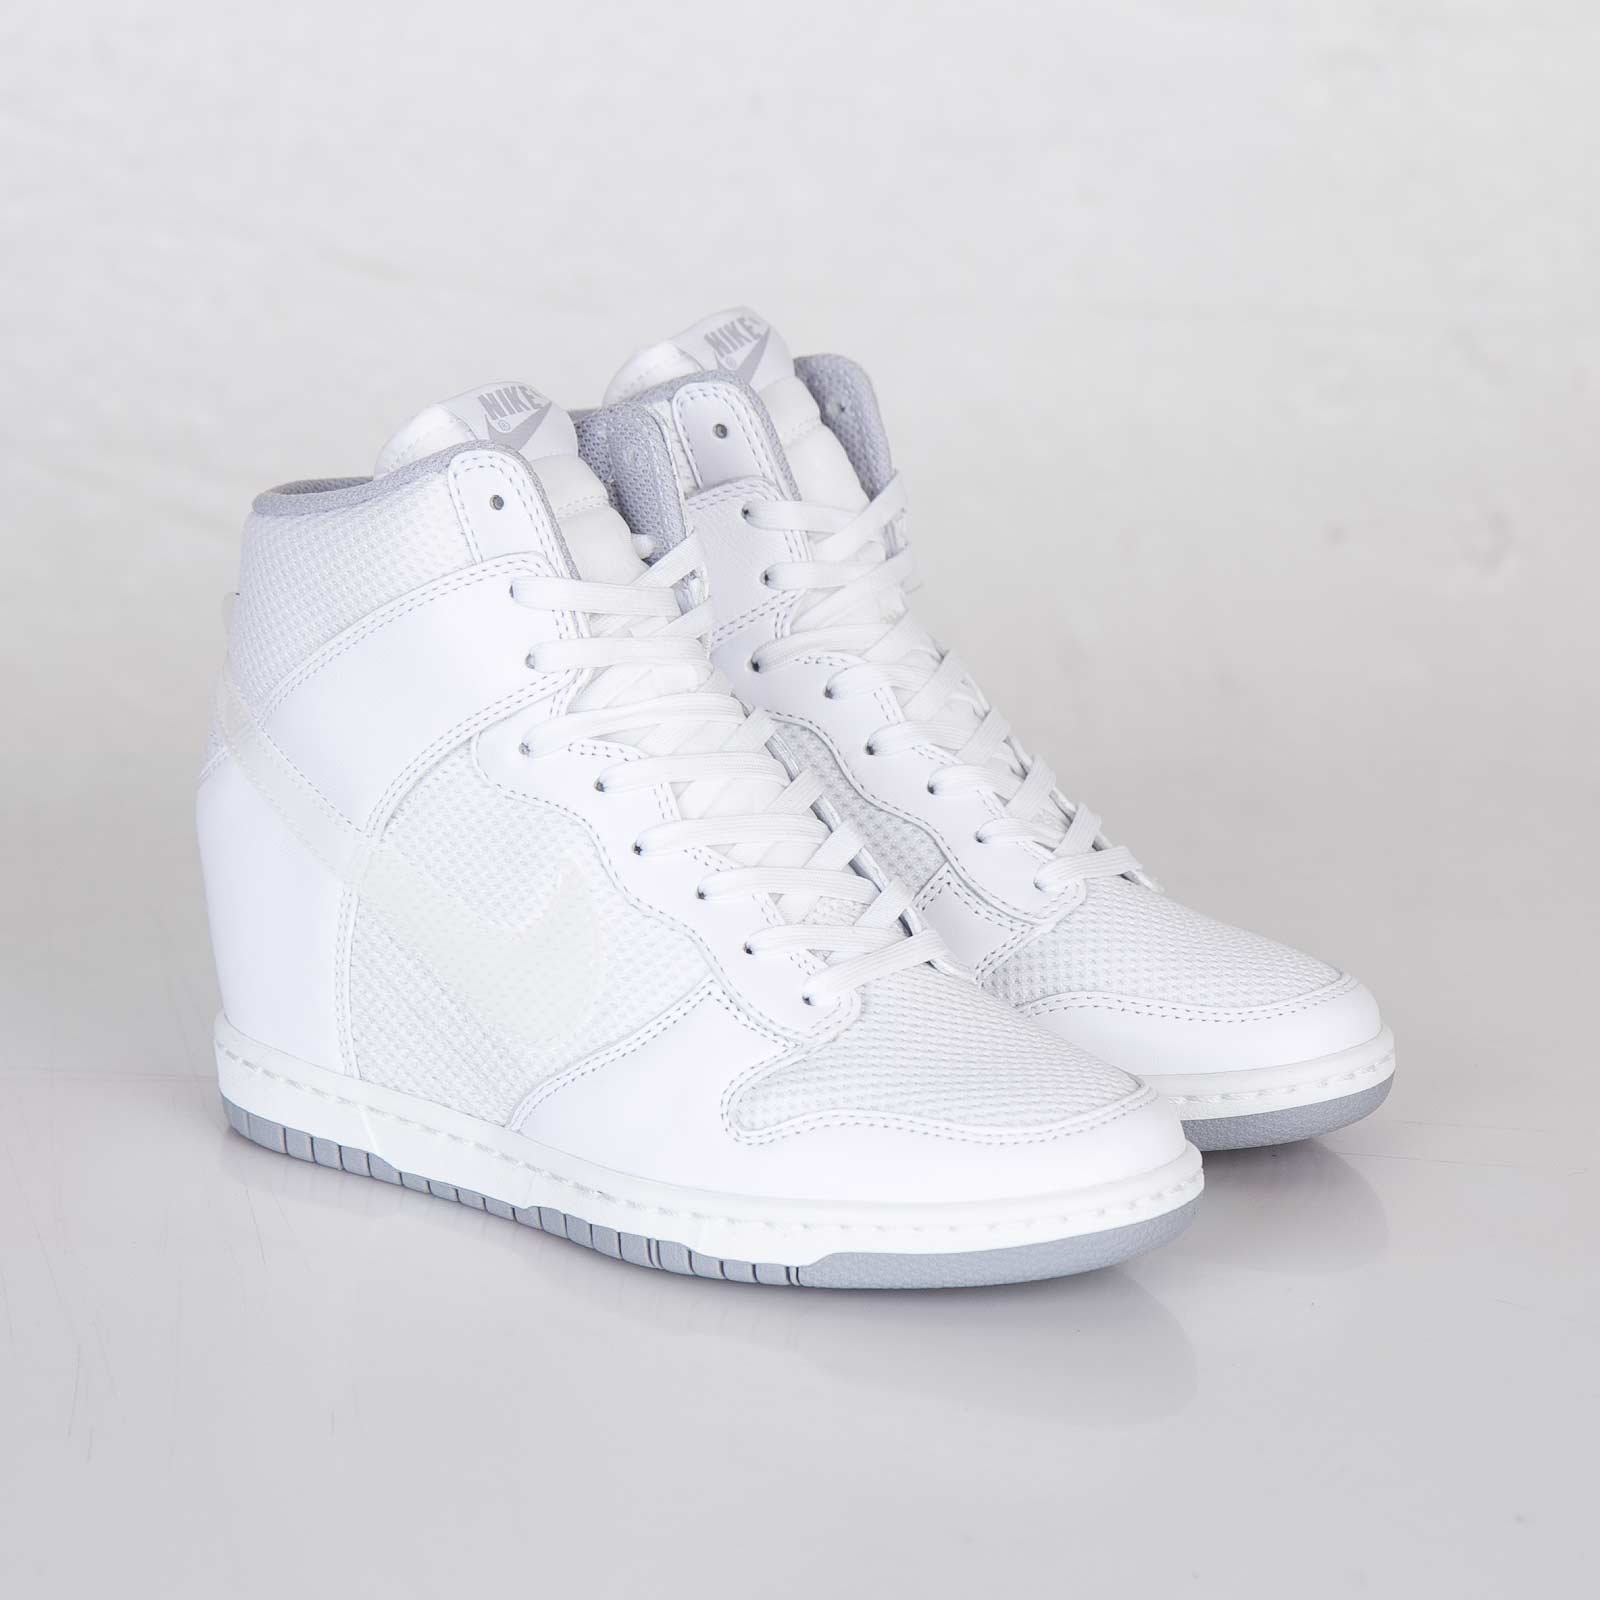 40a0882c3e09 ... wedge sneaker woman 039 e49dd 19964  reduced nike dunk sky hi white  croc size 5.5 5ec29 15de5